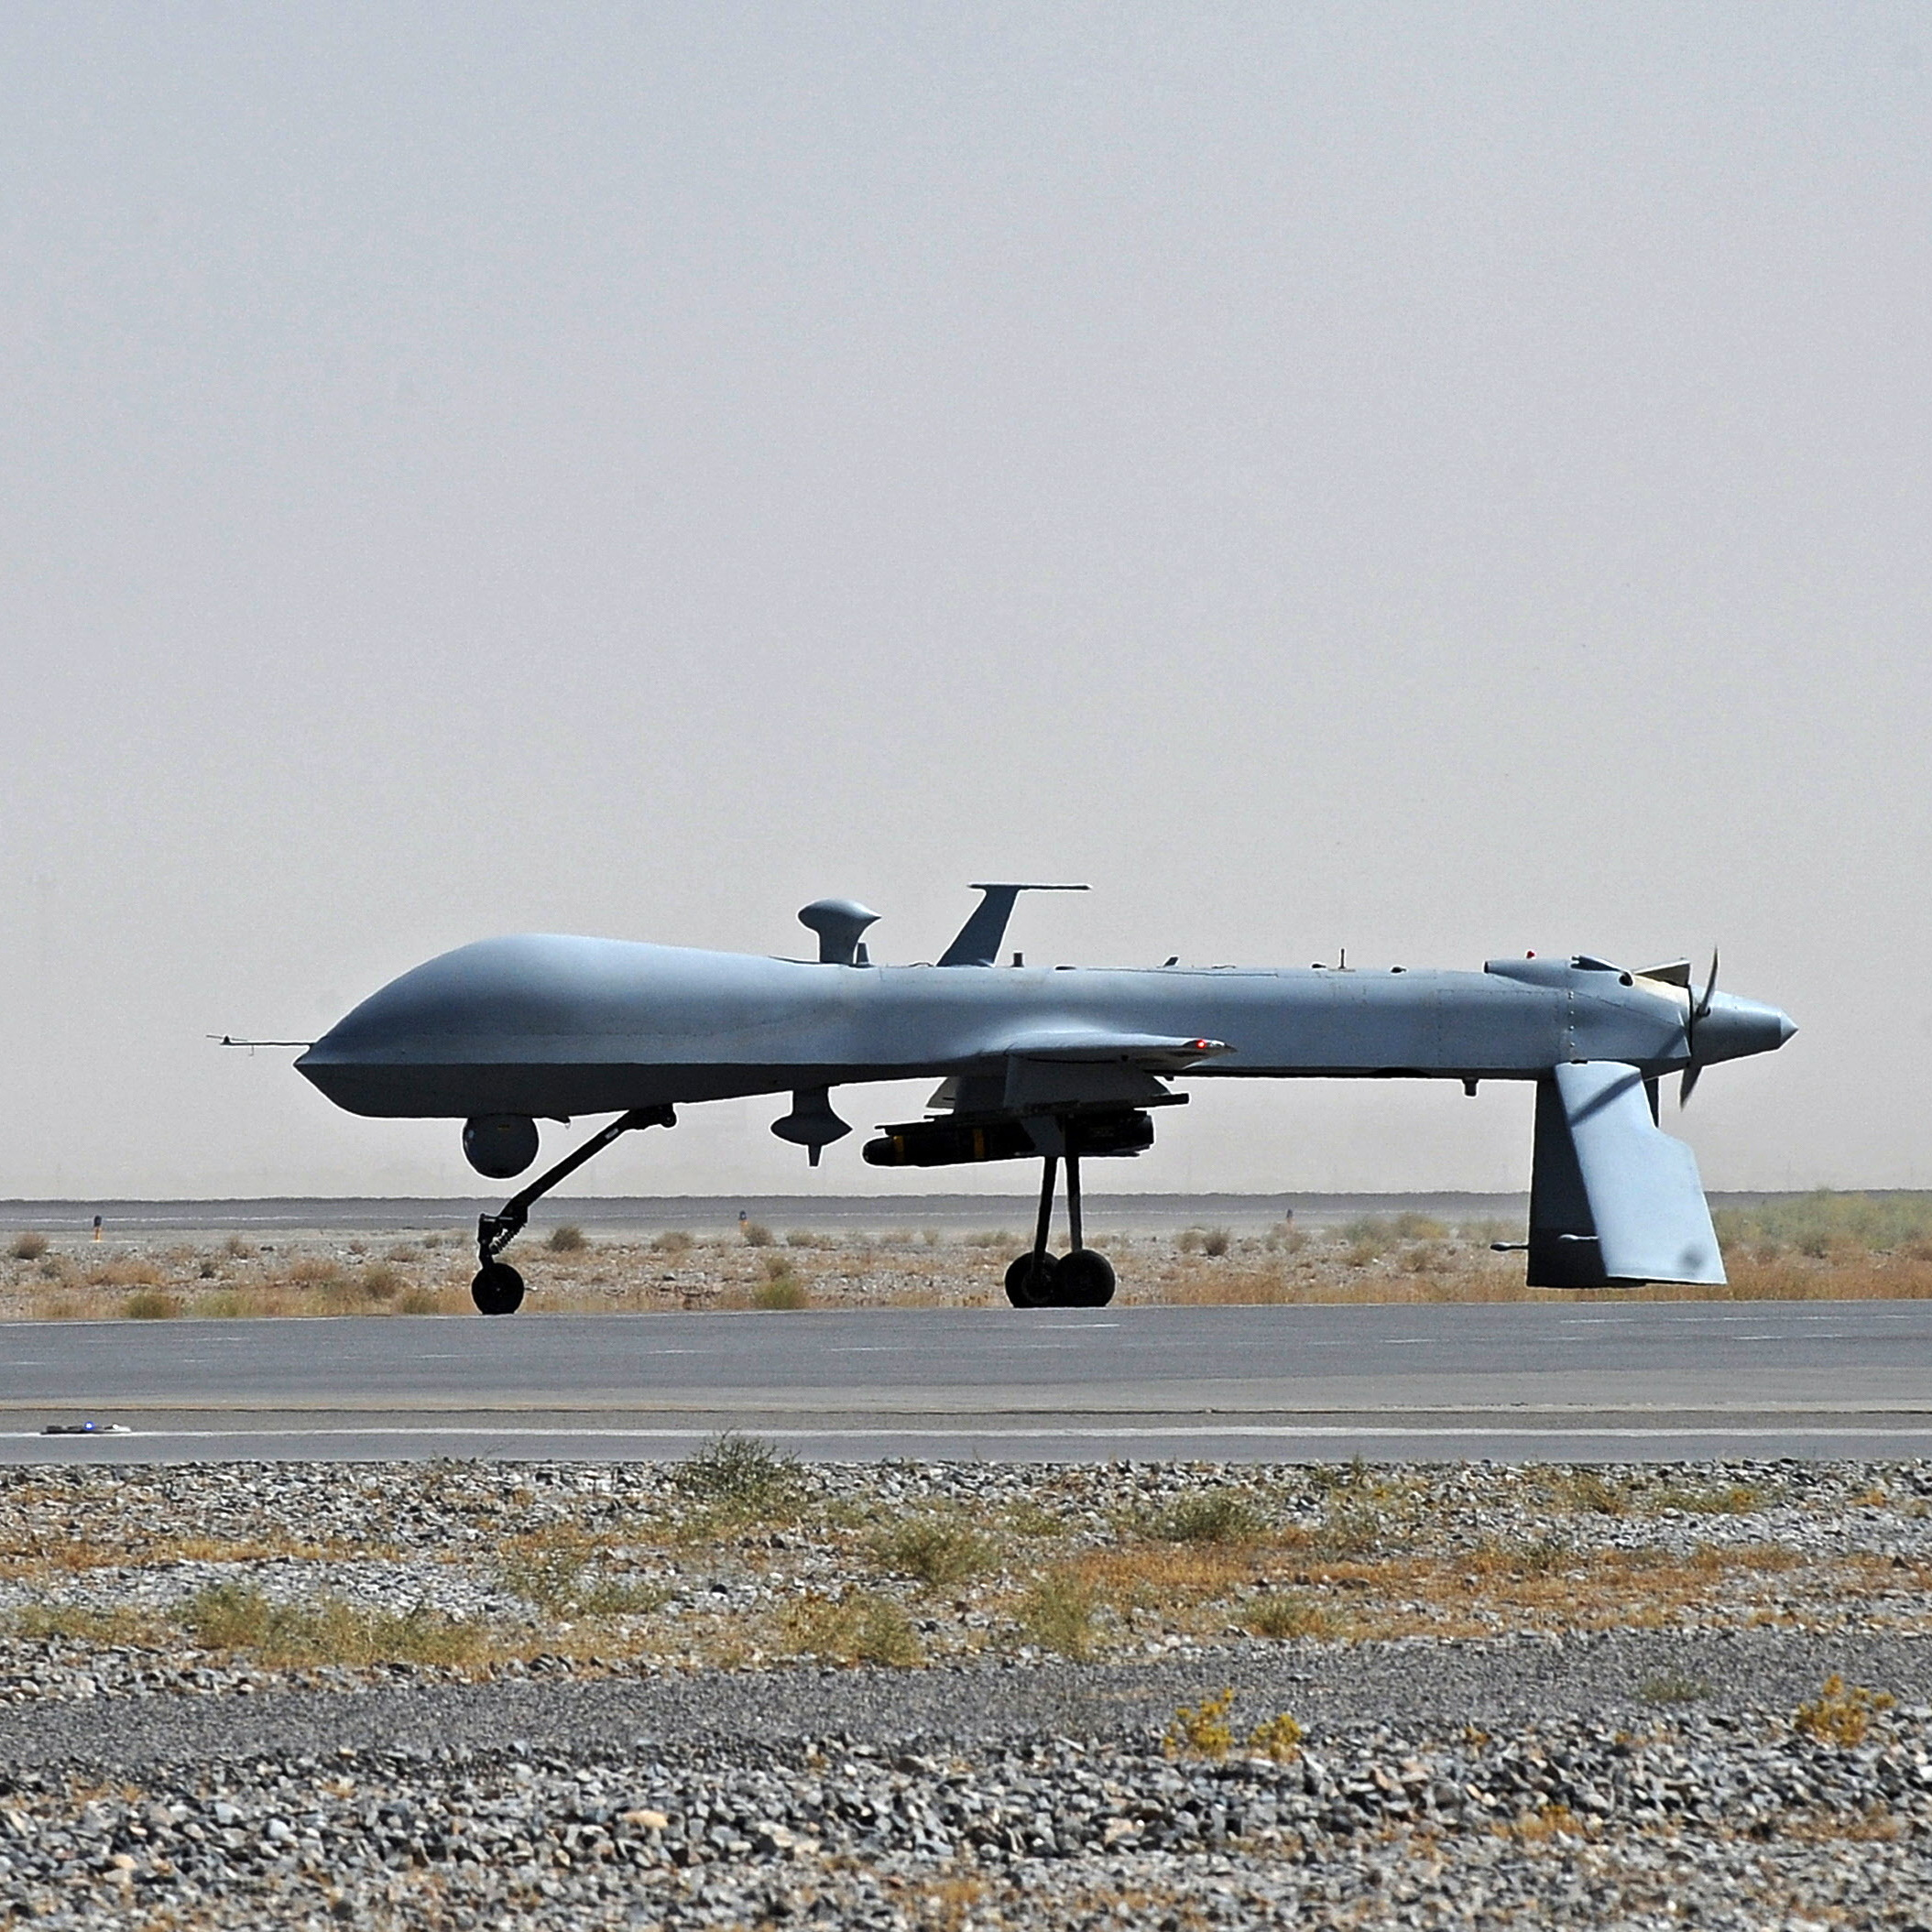 An unmanned U.S. Predator drone sat on the tarmac of Kandahar military airport in southern Afghanistan in 2010. Drone strikes have increased markedly on Obama's watch.